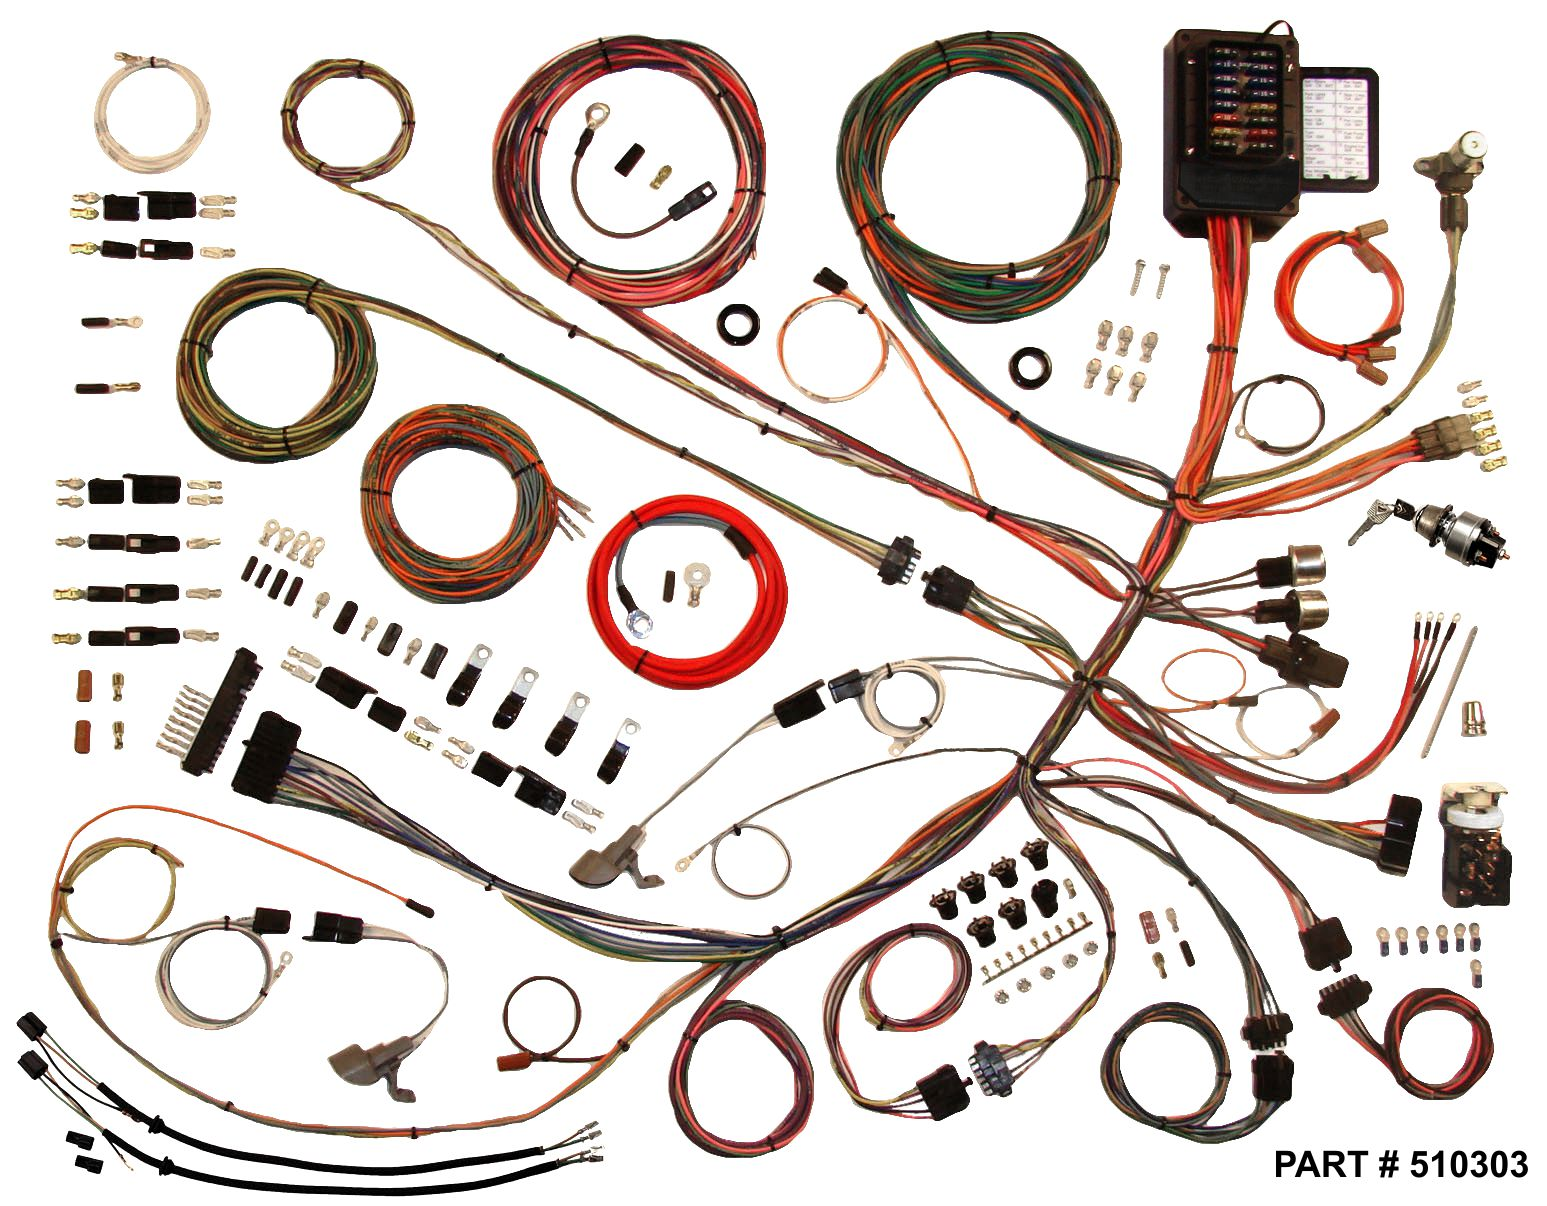 1956 Ford Wiring Harness Wiring Diagram Diode Steel Diode Steel Antichitagrandtour It